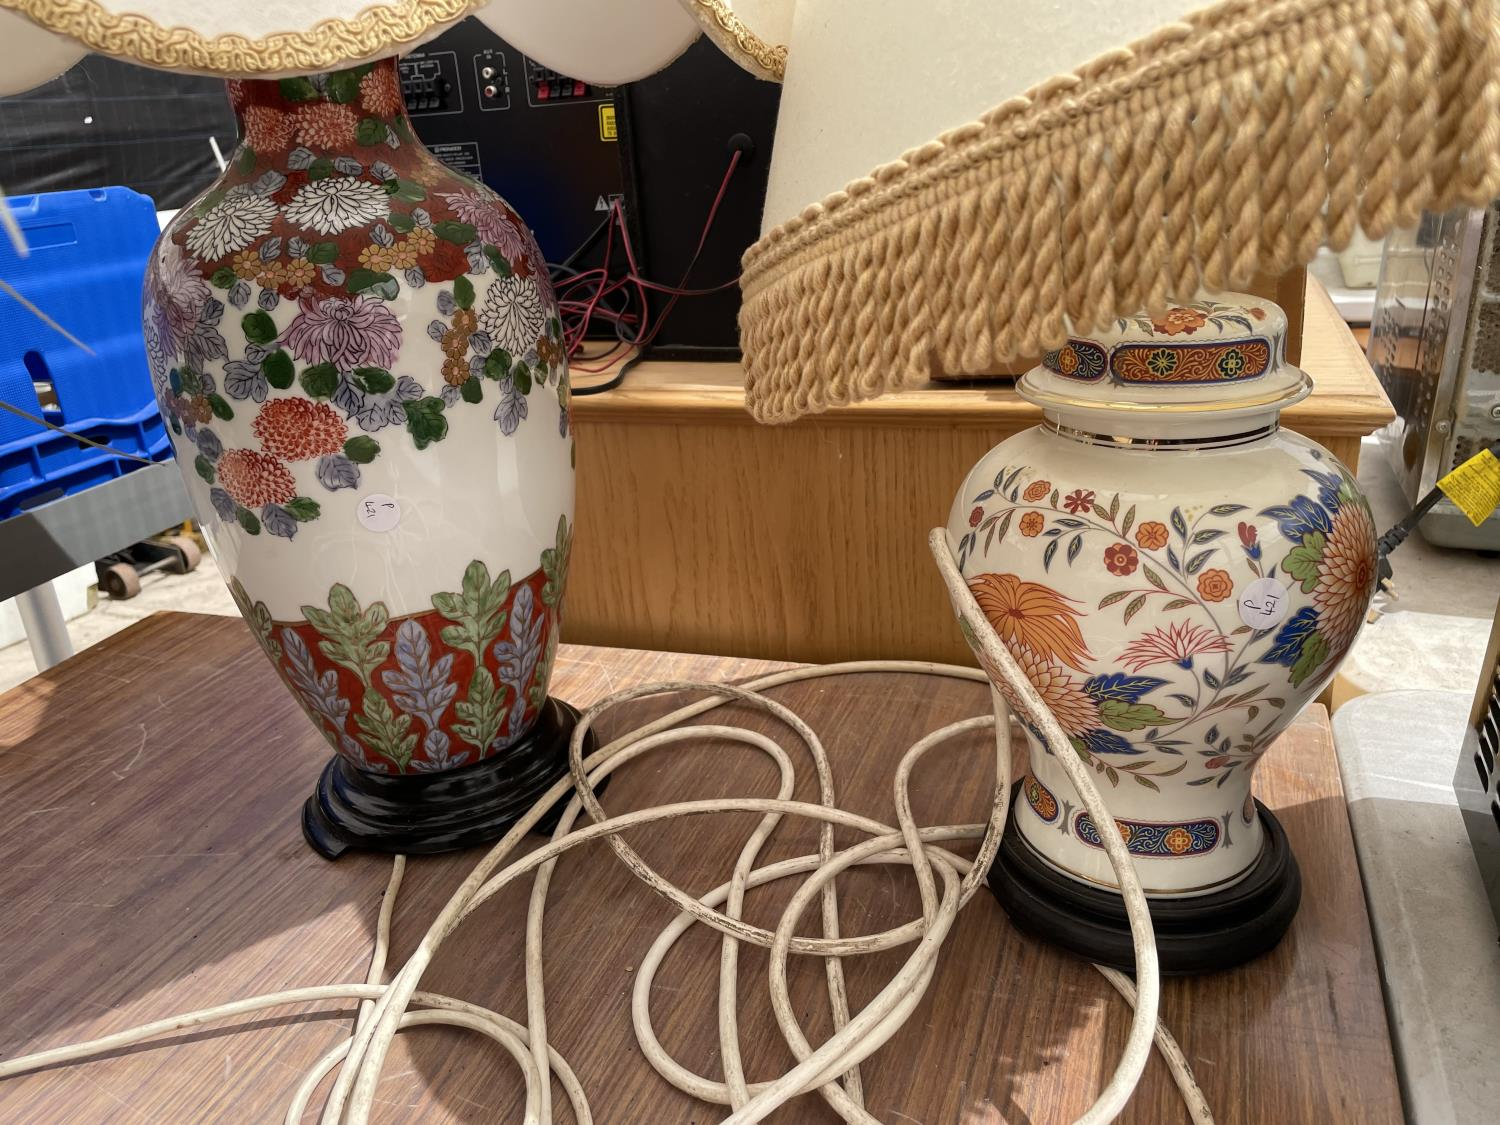 A VASE AND A PLANT POT CONTAINING ARTIFICIAL FLOWERS - Image 3 of 6